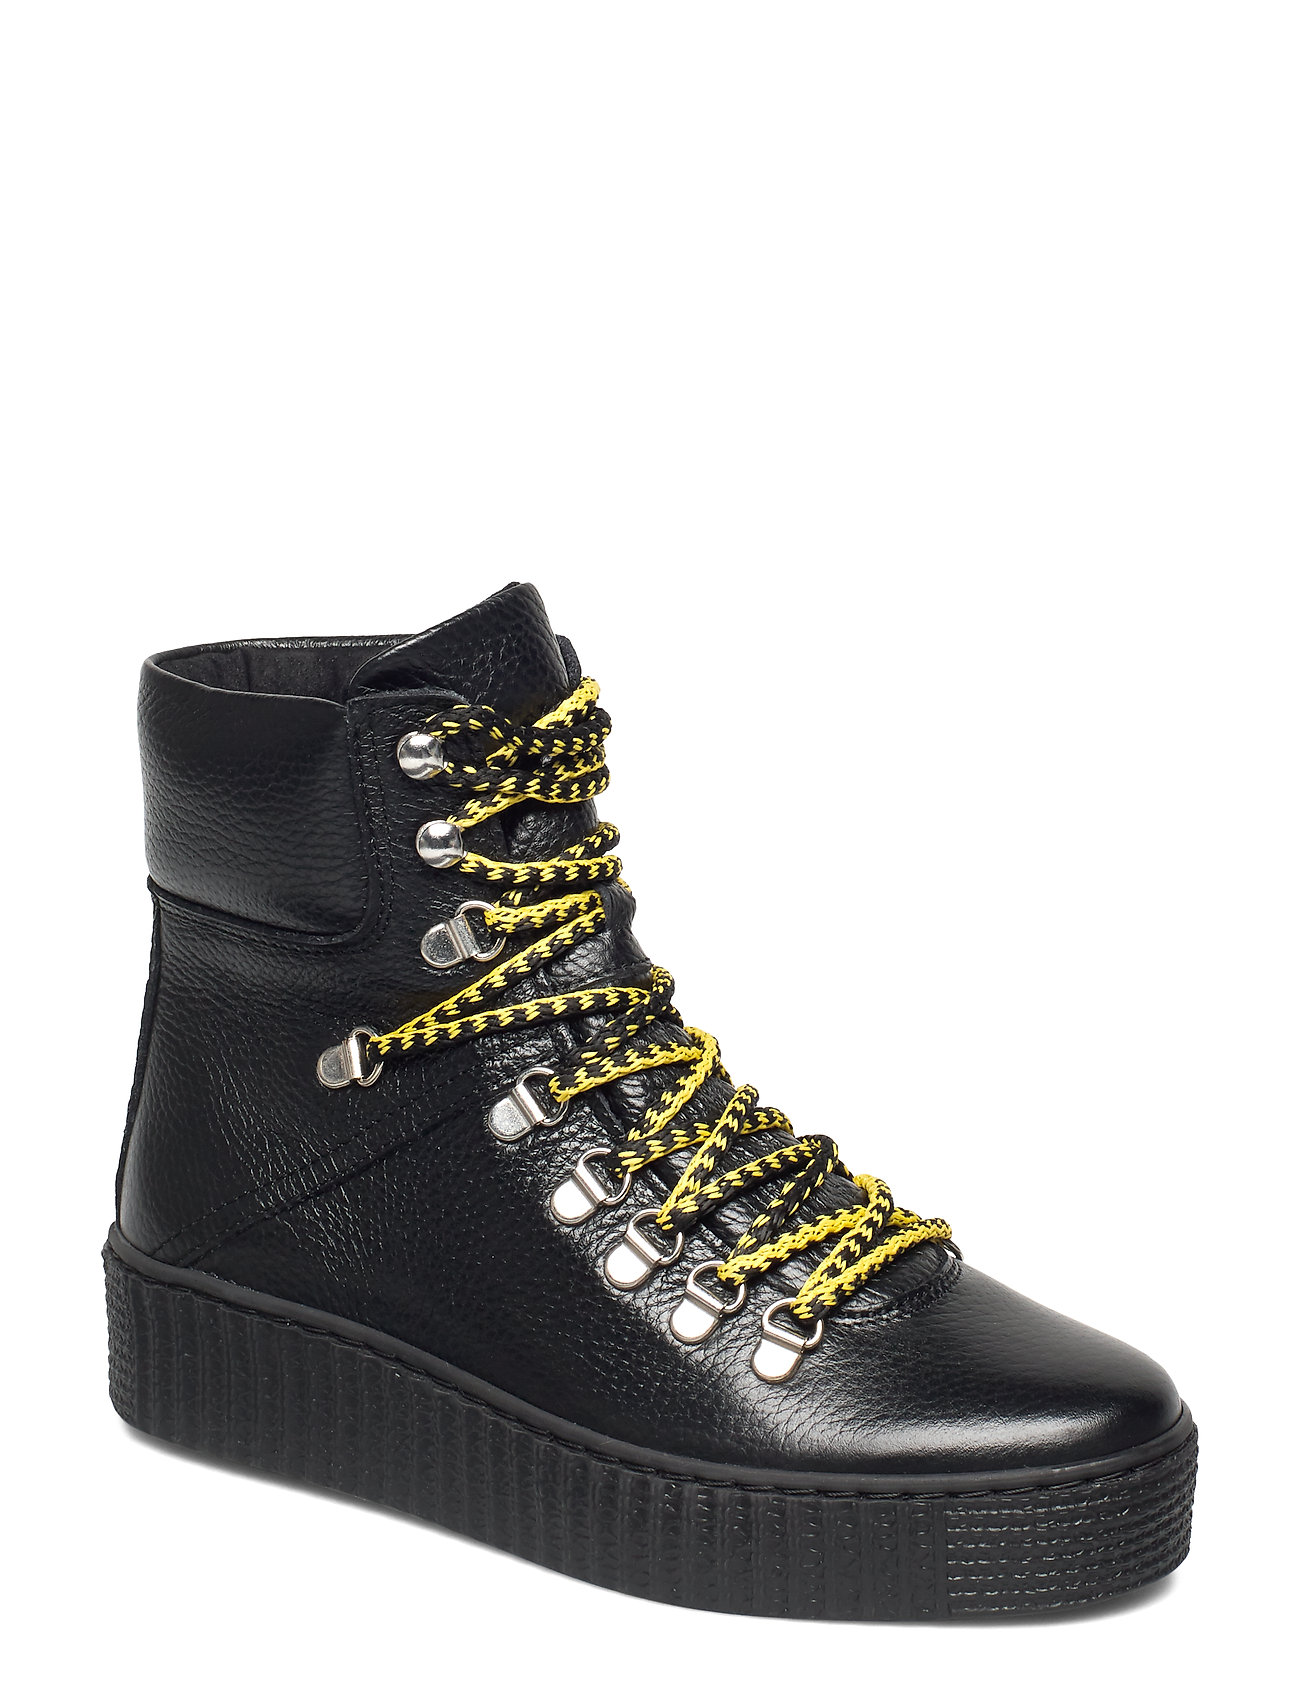 Image of Agda L Shoes Boots Ankle Boots Ankle Boot - Flat Sort Shoe The Bear (3406190531)